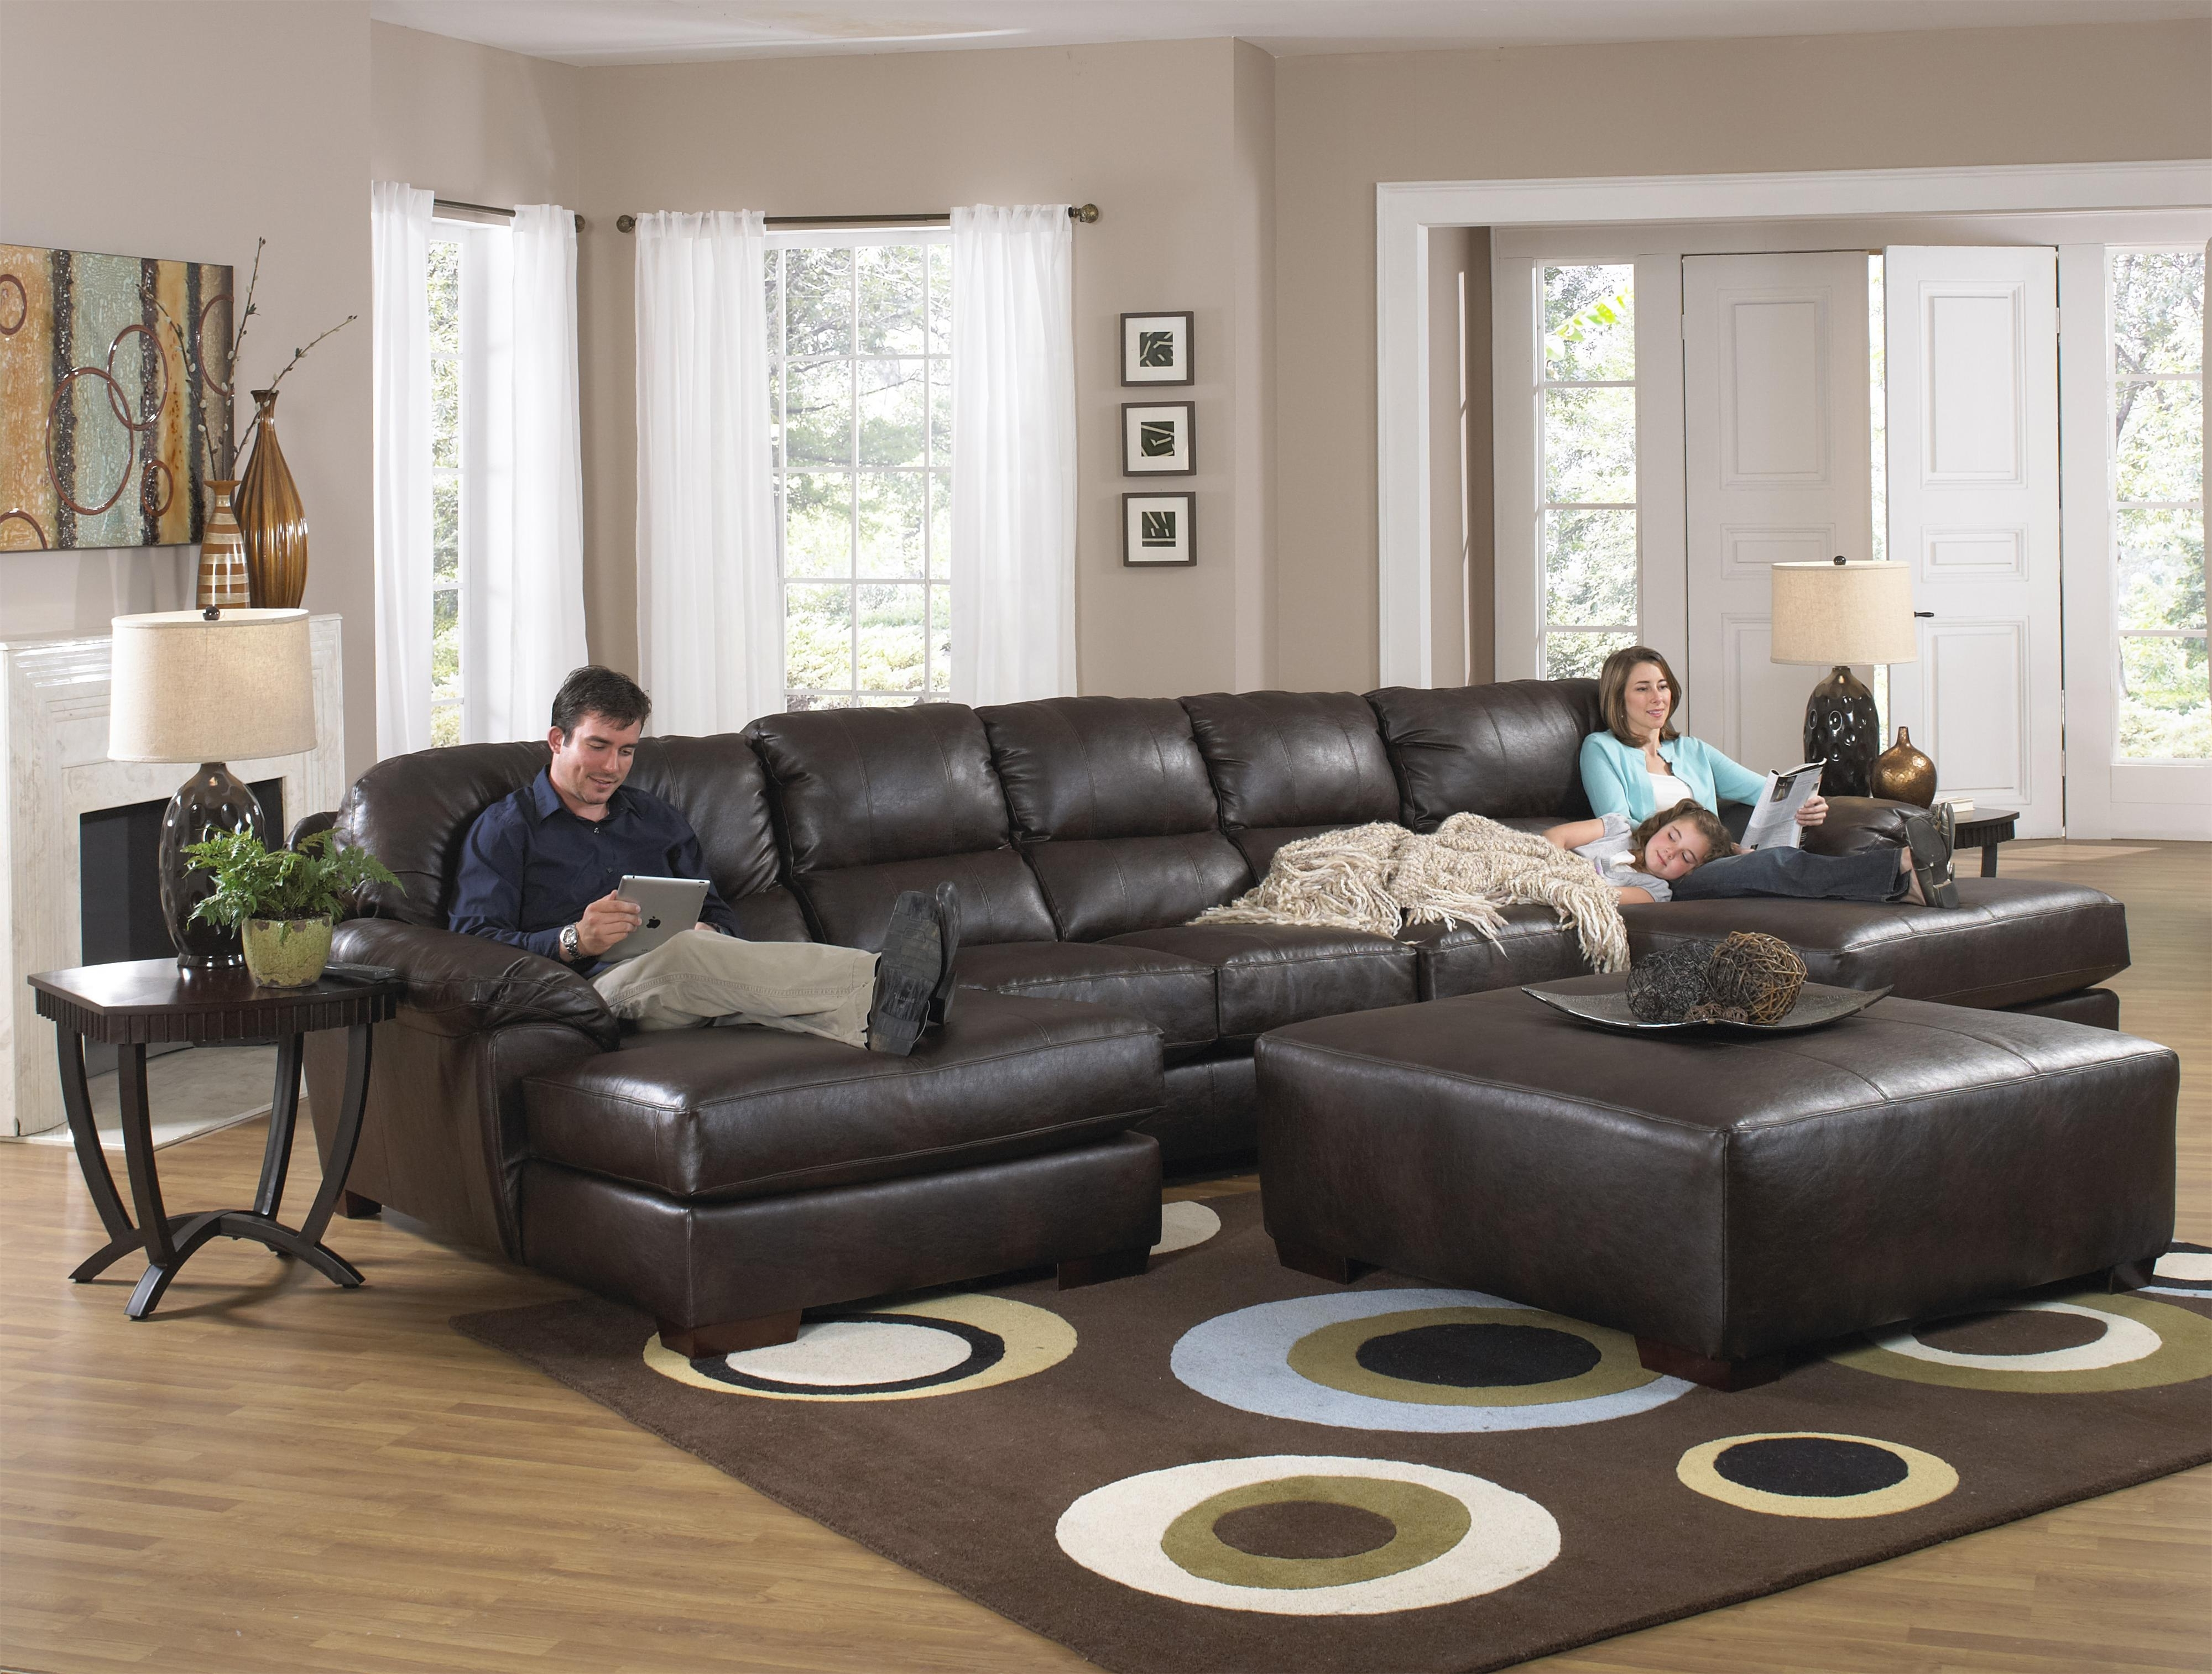 Most Current Sectional Sofas With Chaise And Recliner With Two Chaise Sectional Sofa With Five Total Seatsjackson (View 5 of 15)